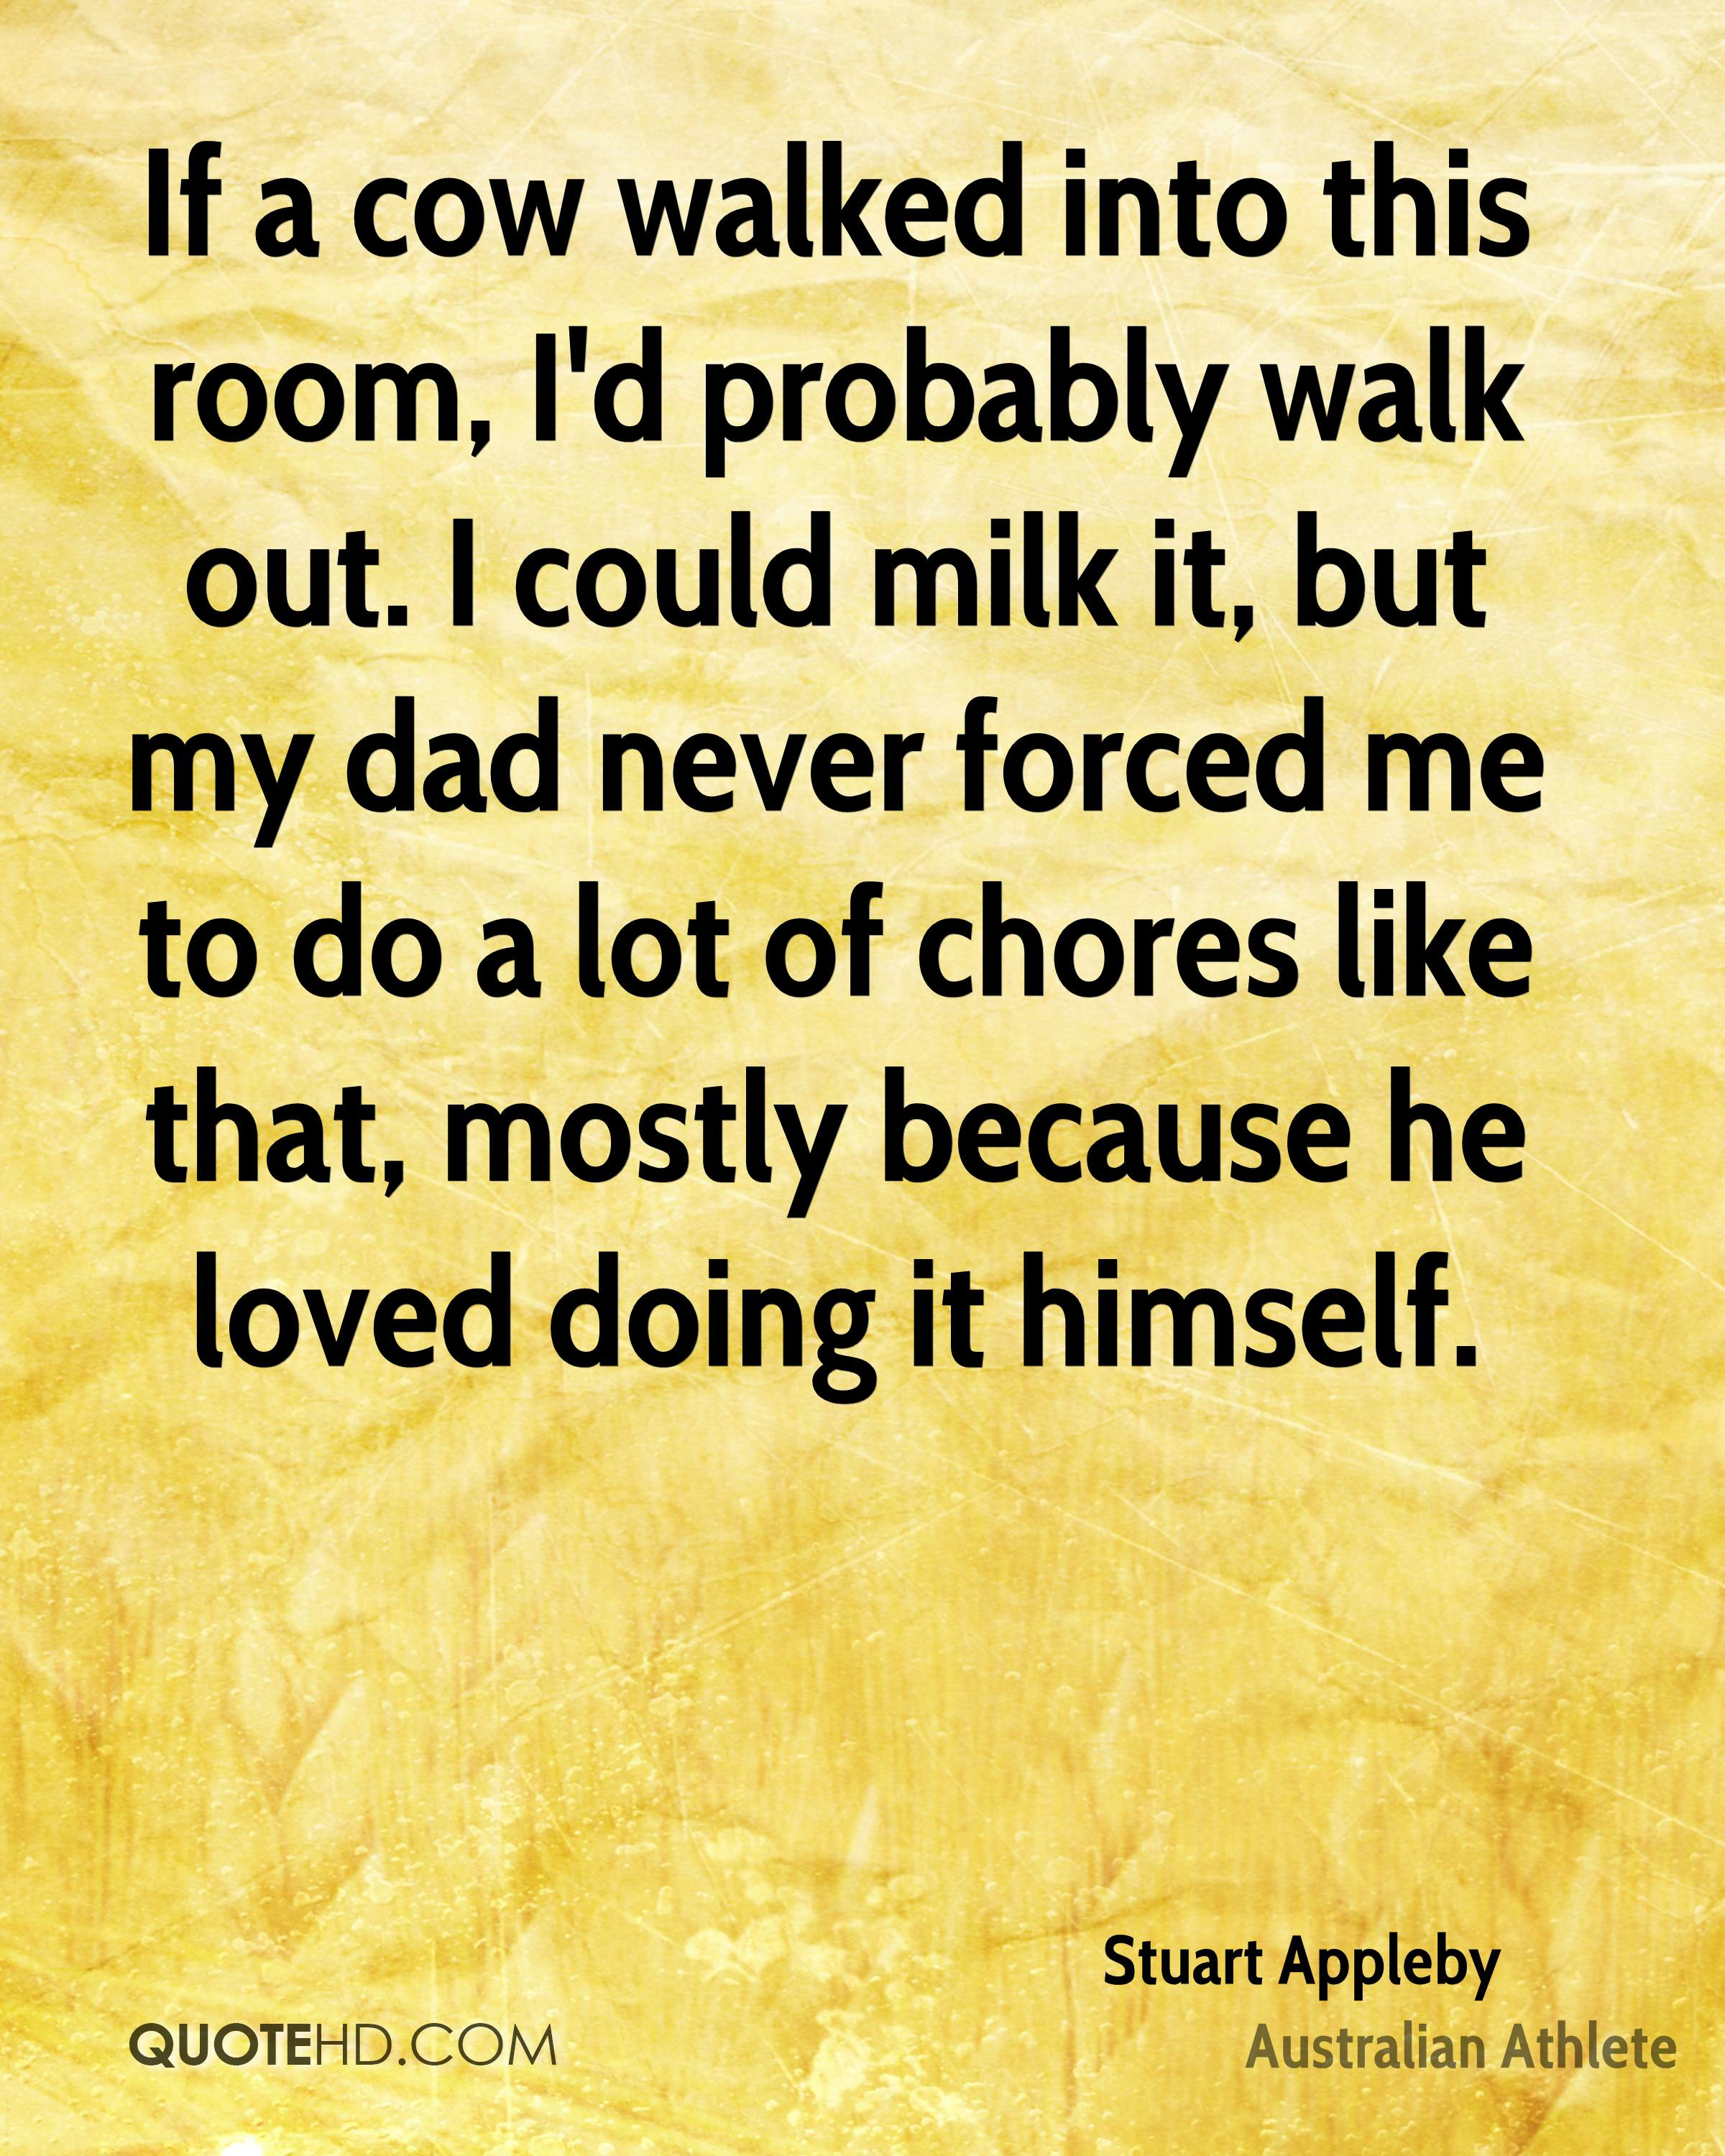 If a cow walked into this room, I'd probably walk out. I could milk it, but my dad never forced me to do a lot of chores like that, mostly because he loved doing it himself.